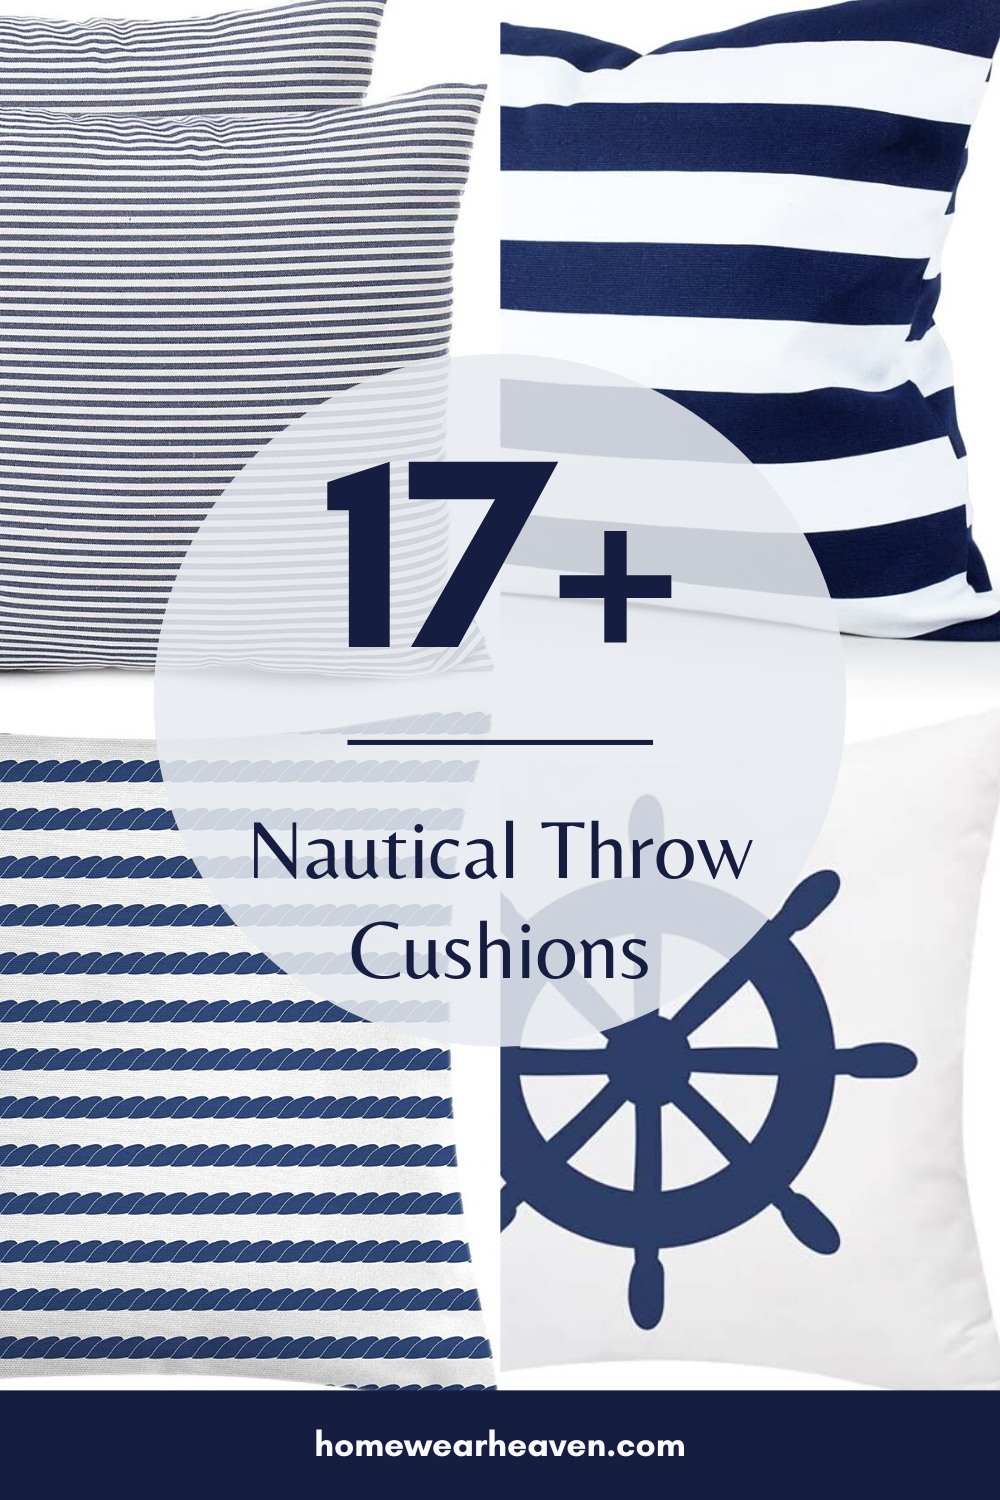 These are the best nautical throw cushions for your beach house. Choose from a range of navy and white throw cushions which will look perfect in your beach themed guest bedroom or your coastal living room. You can even buy these on Amazon, which means they're super easy to access and get in your home.  #cushions #throwcushions #nauticaldecor #beachhouse